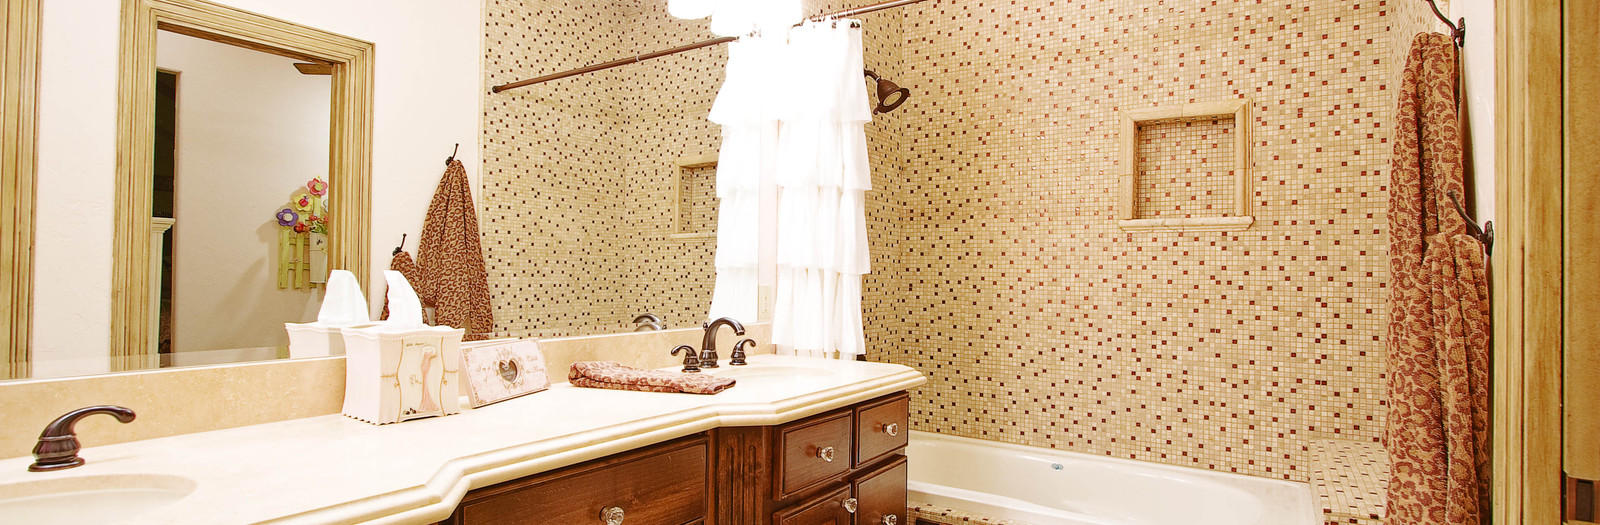 Transitional Bathroom with oil rubbed bronze faucet